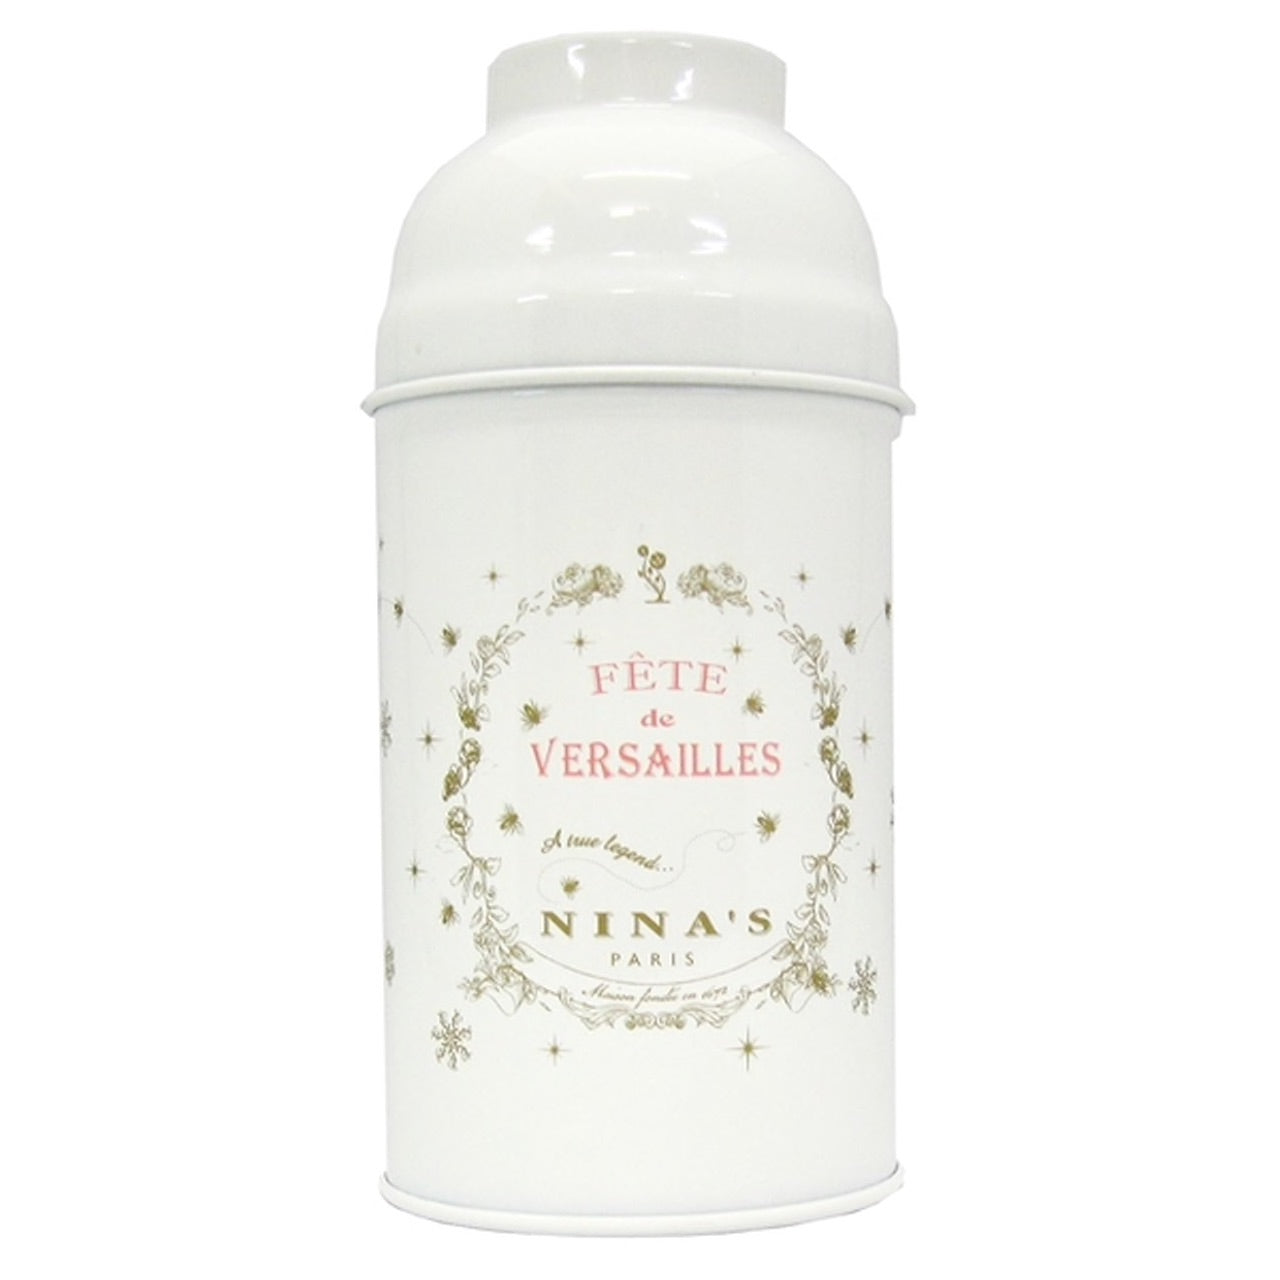 Nina's Fete de Versailles Loose Leaf Tea in Gift Tin